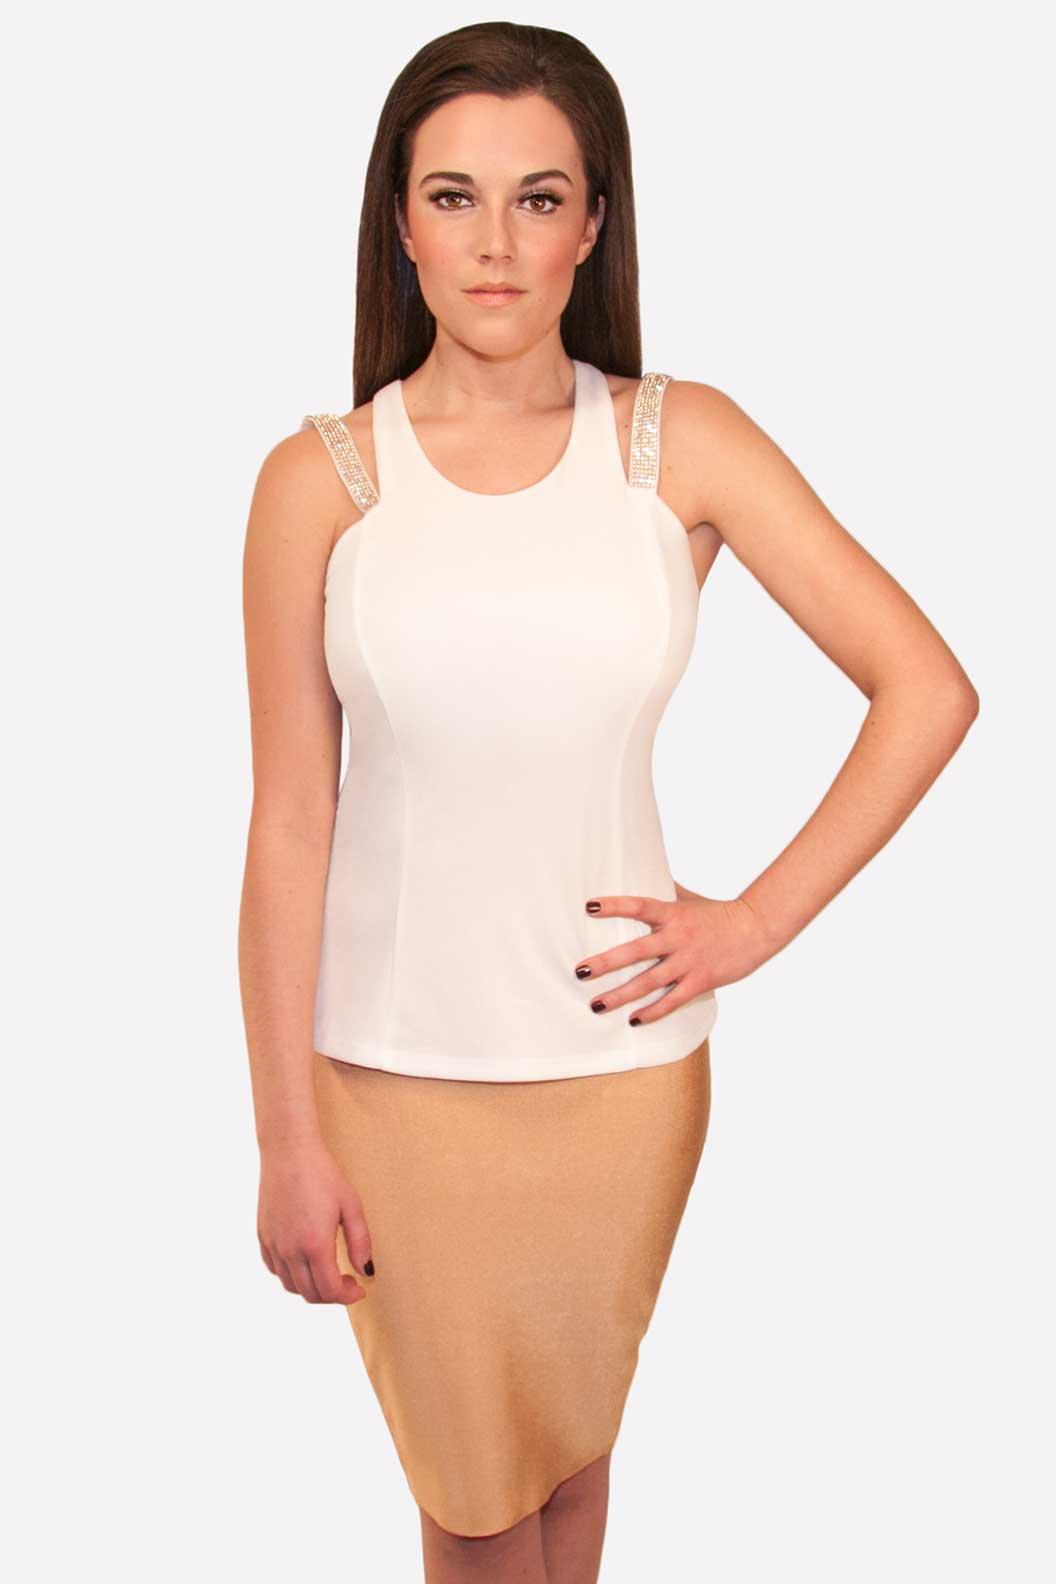 white stretchy top with gold accents